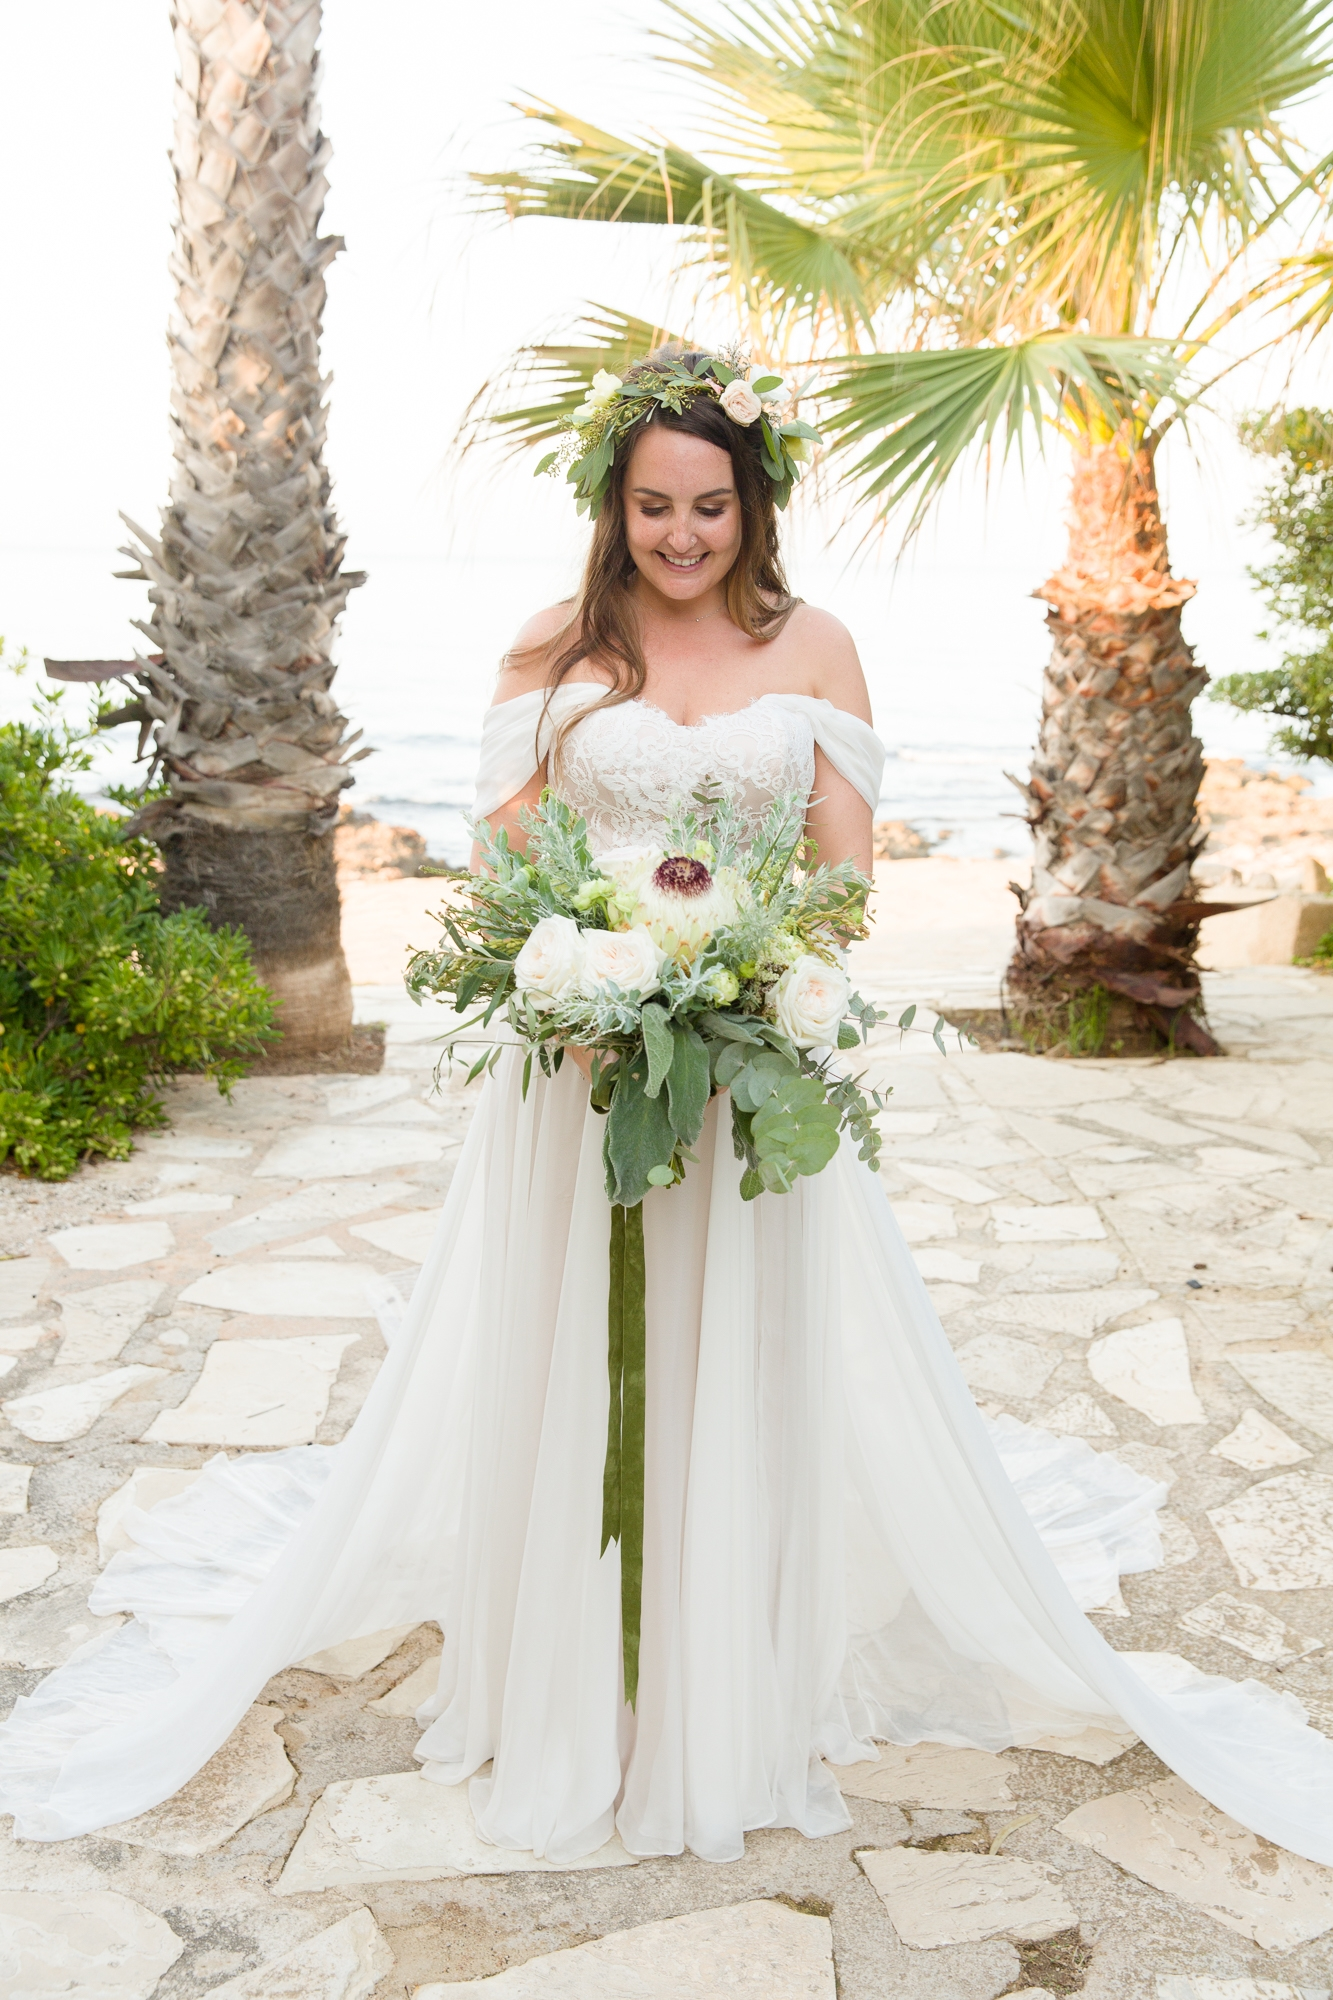 bride stands in front of palm trees in Denia wedding wearing a Moira Hughes dress and flower crown and white bouquet